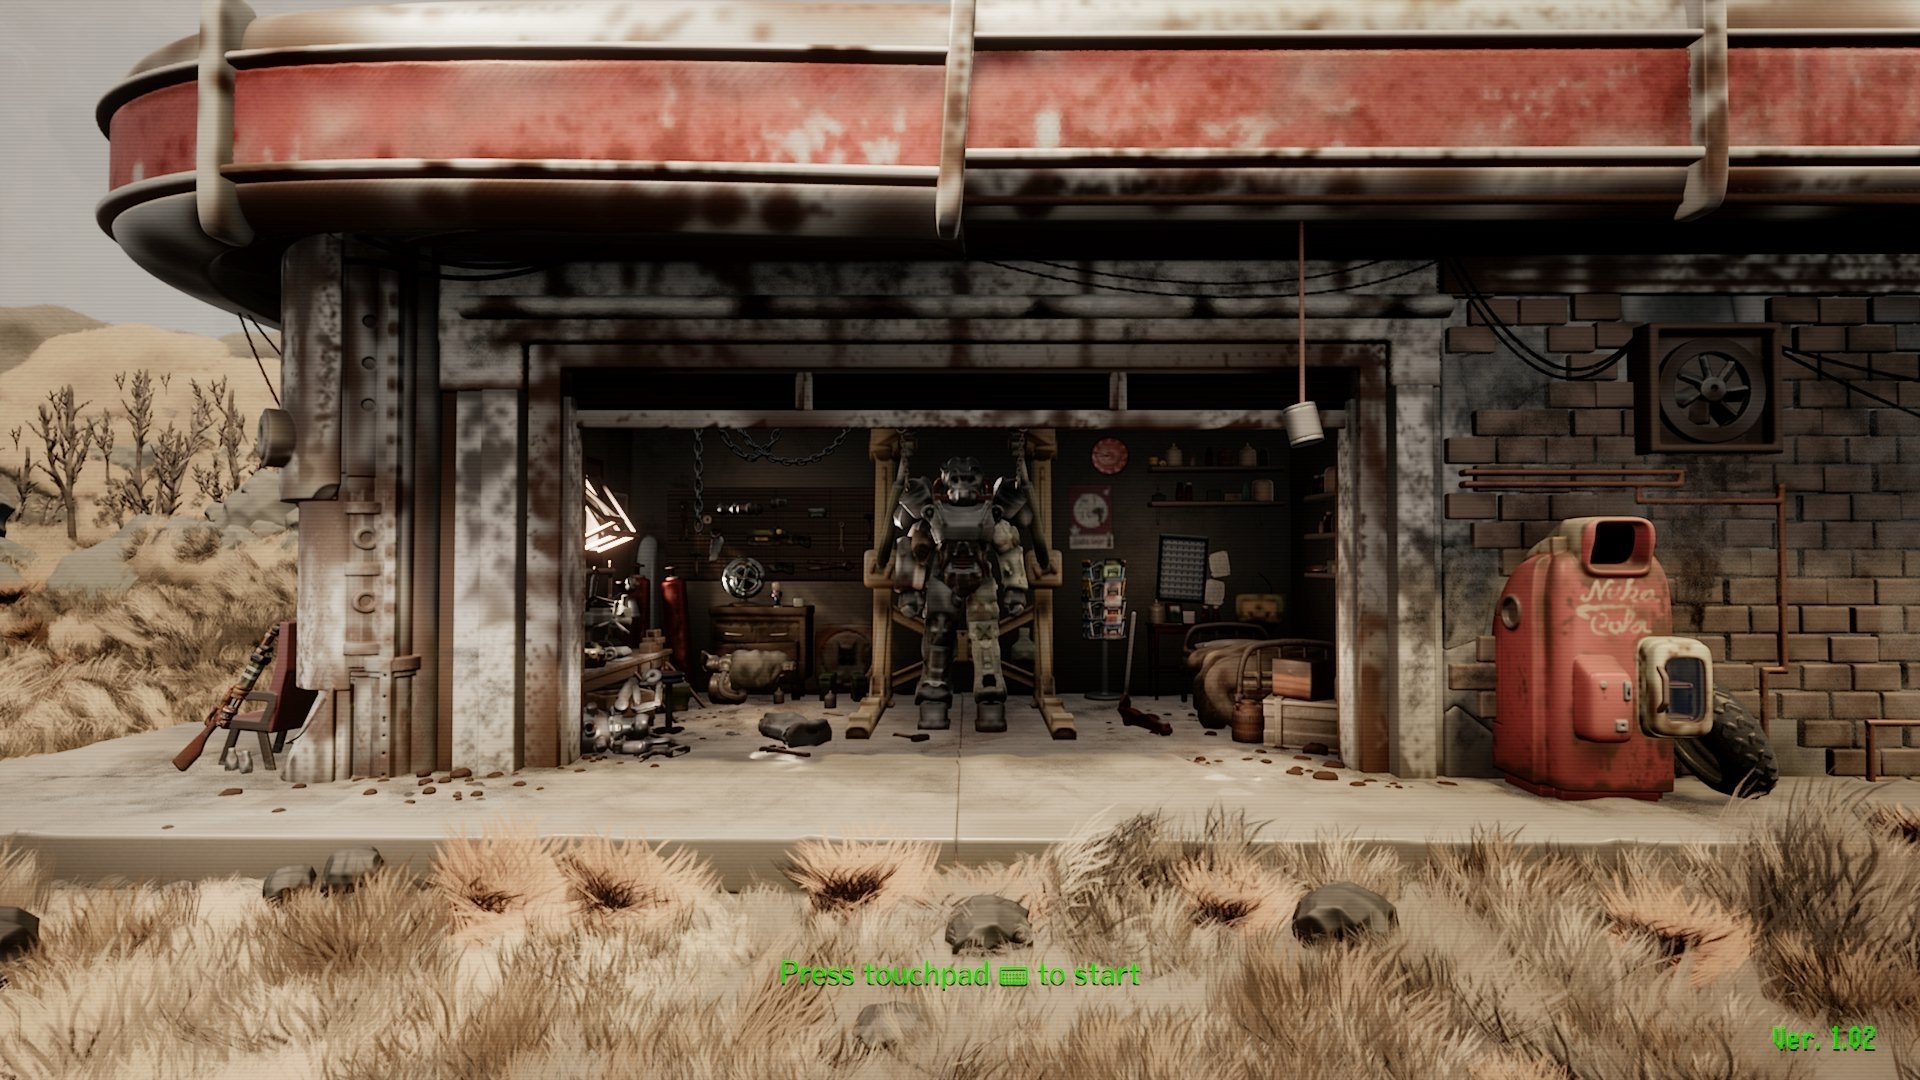 This Fallout 4 recreation in Dreams is out of this world screenshot